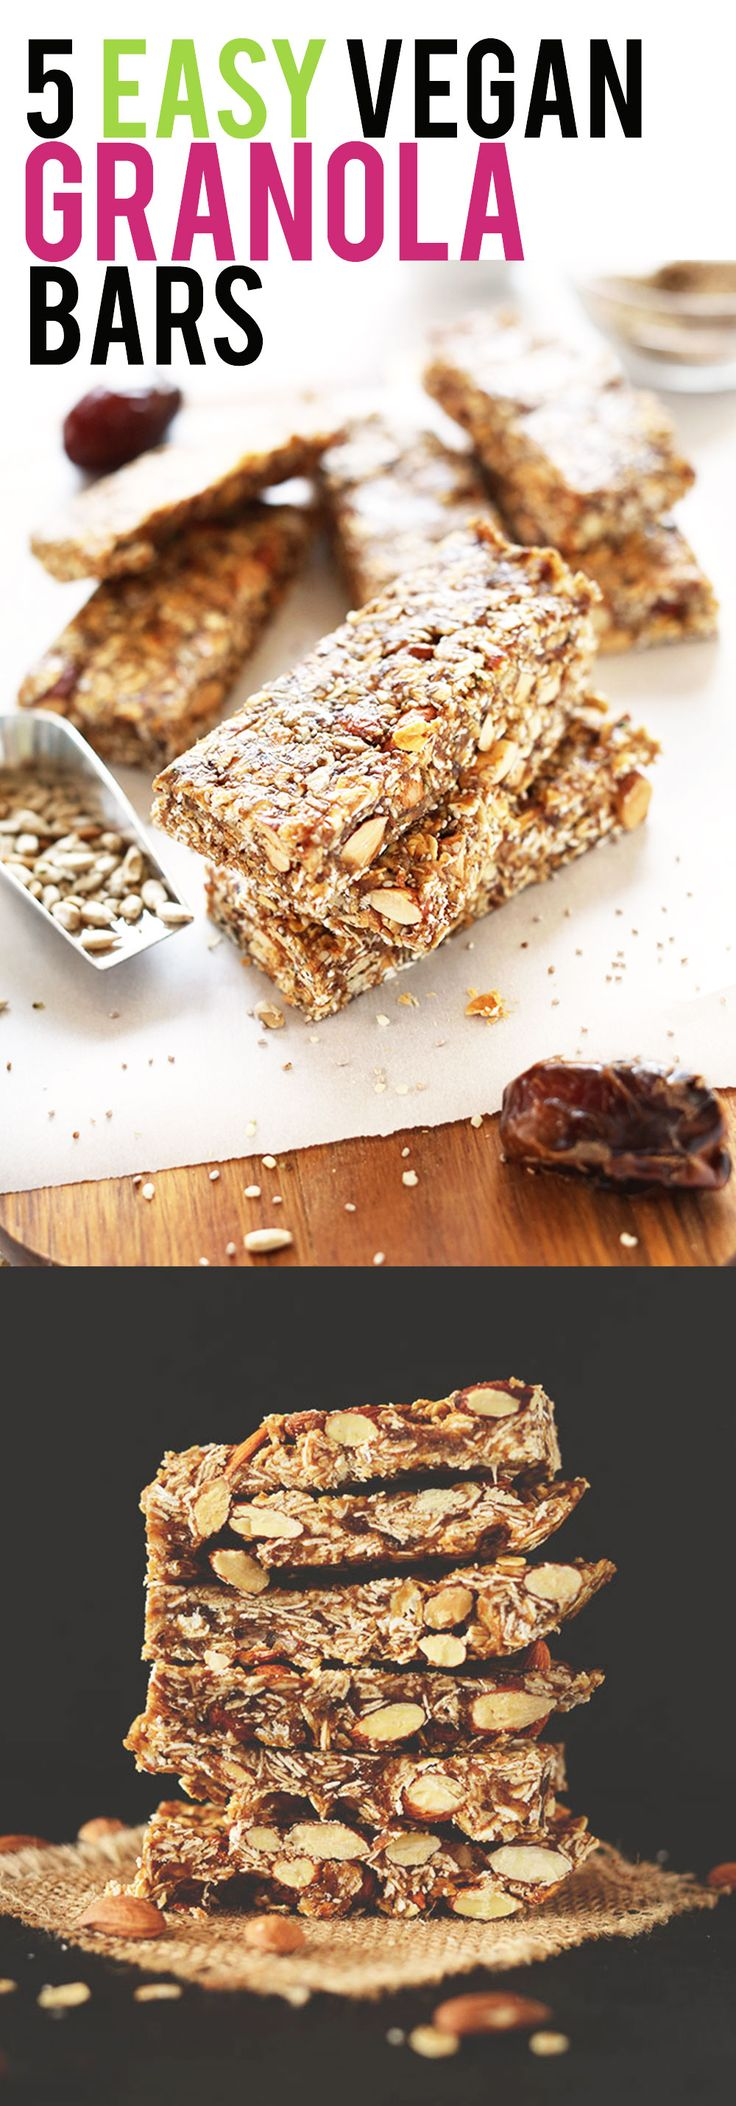 5 EASY Vegan Granola Bar Recipes! Wholesome ingredients with BIG flavor. #vegan